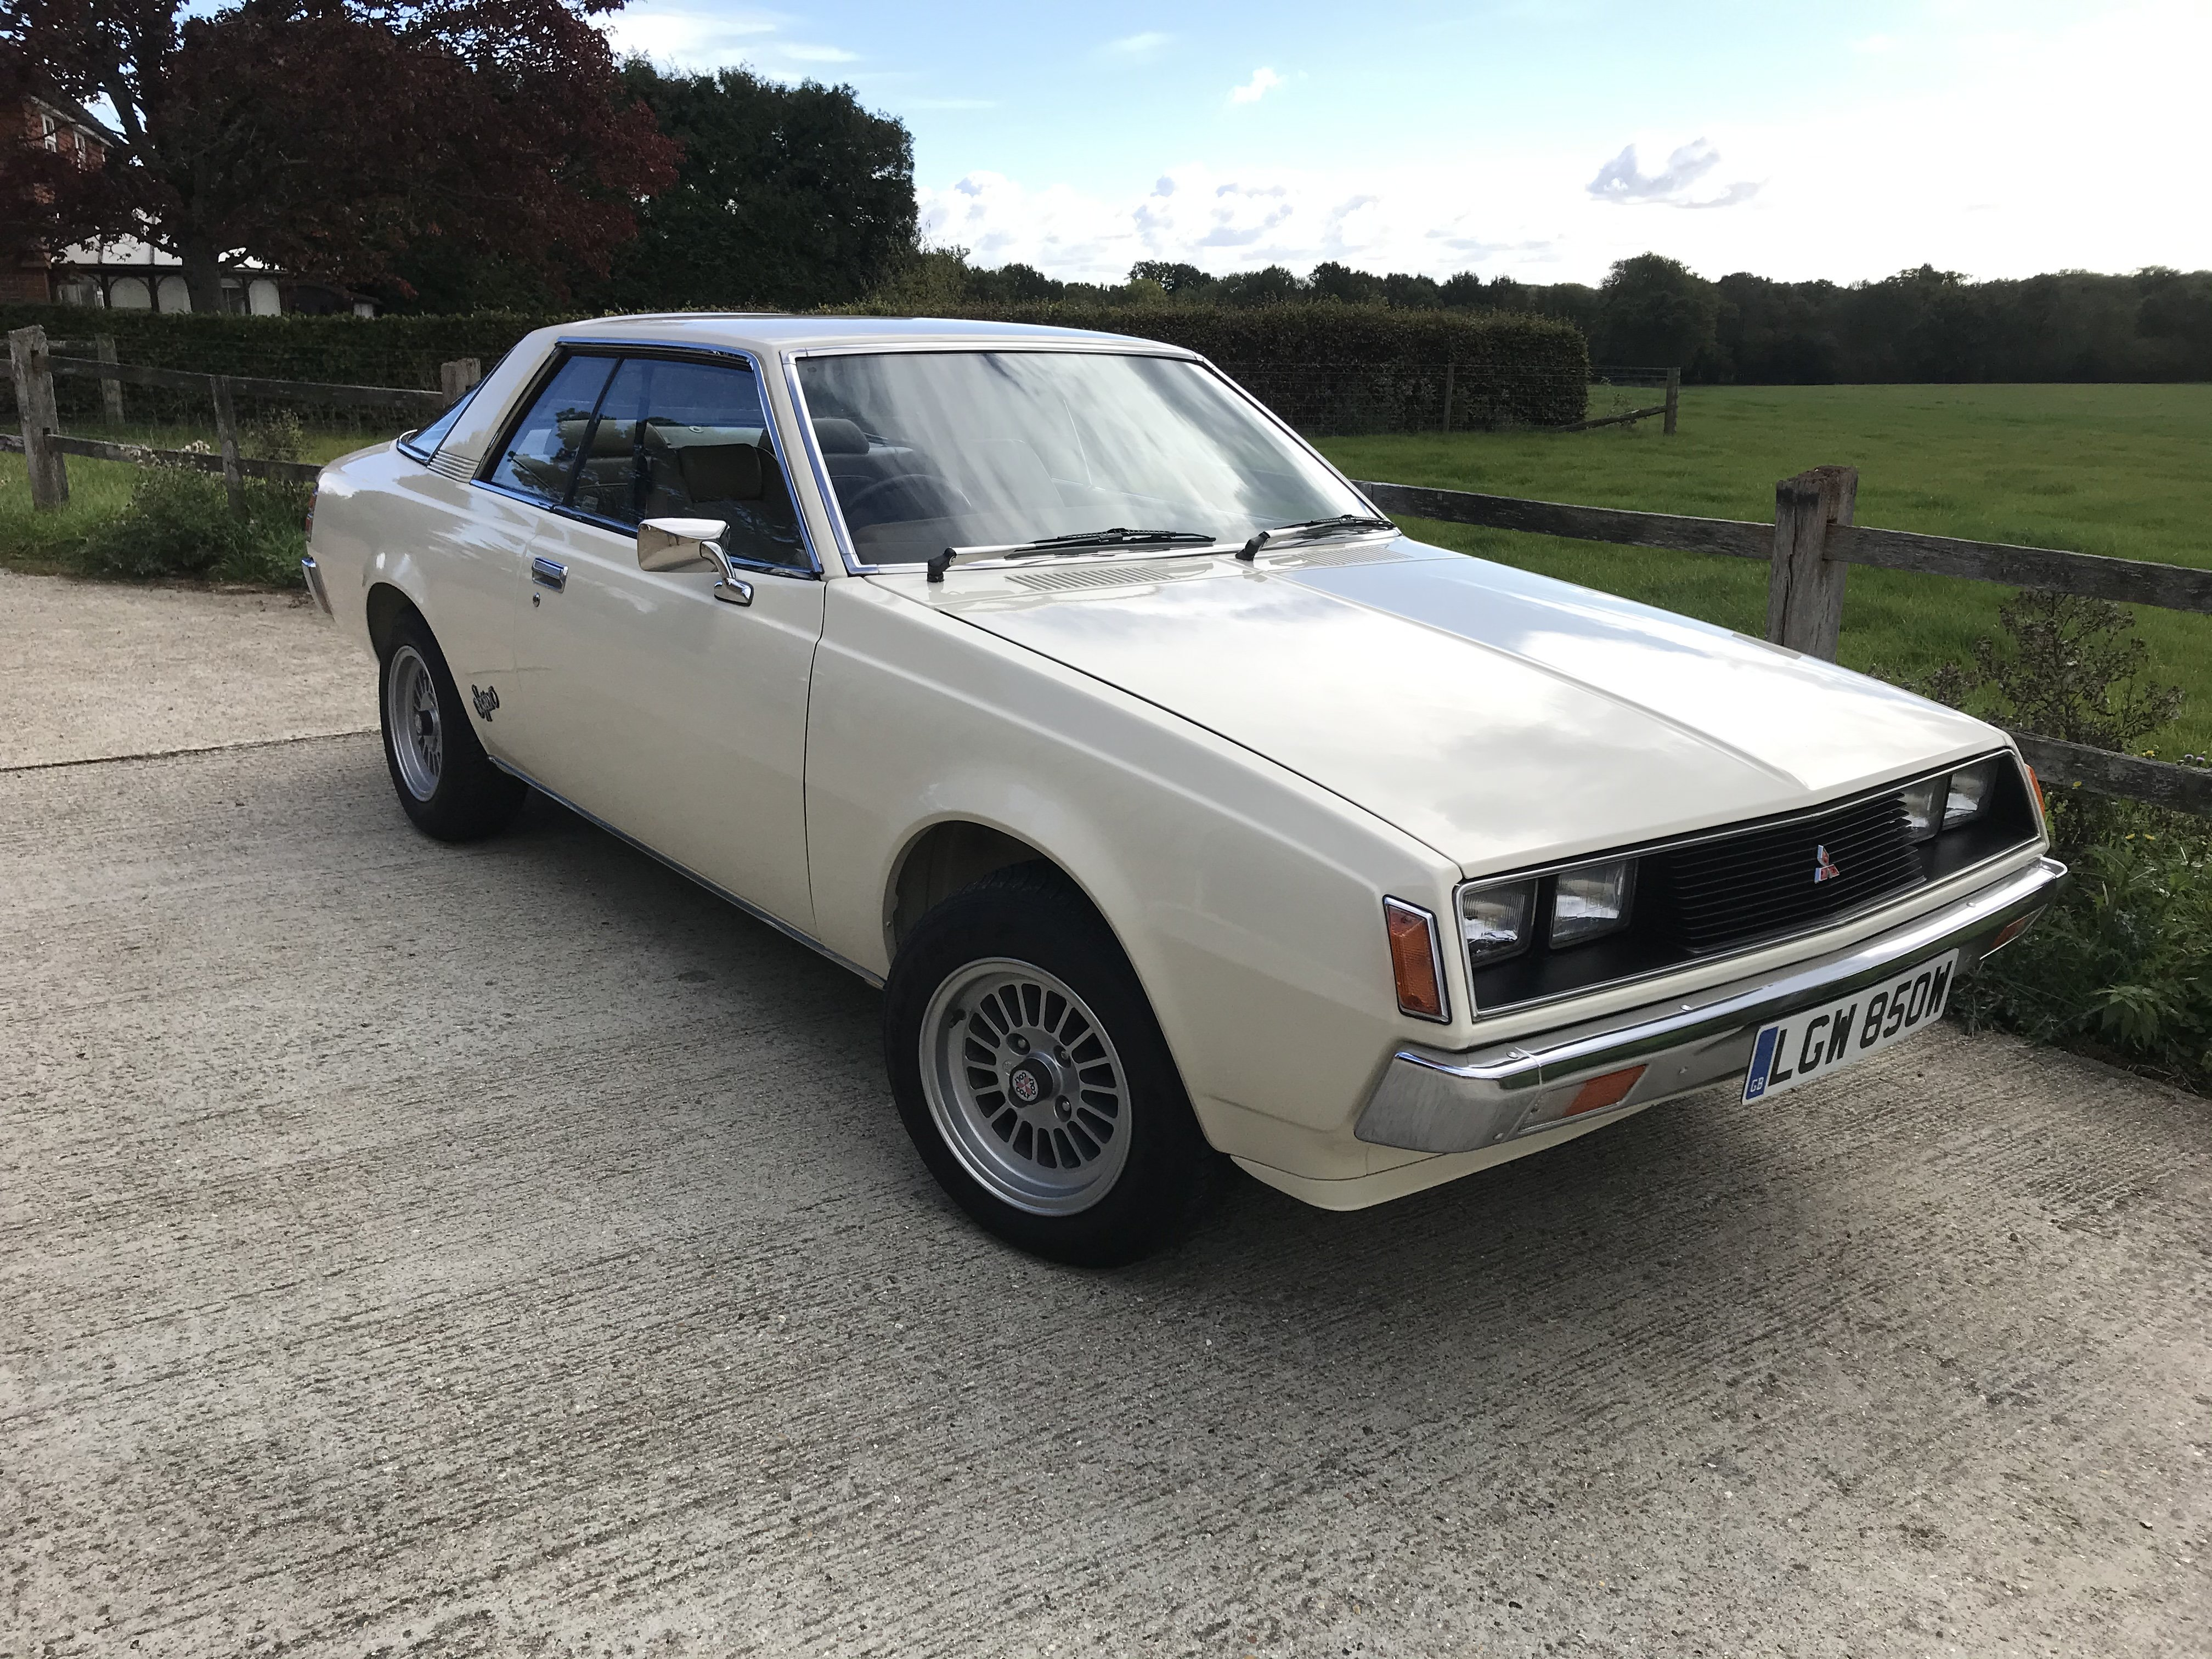 1980 ABSOLUTELY STUNNING MITSUBISHI SAPPORO COUPE NOT STARION For Sale (picture 1 of 12)